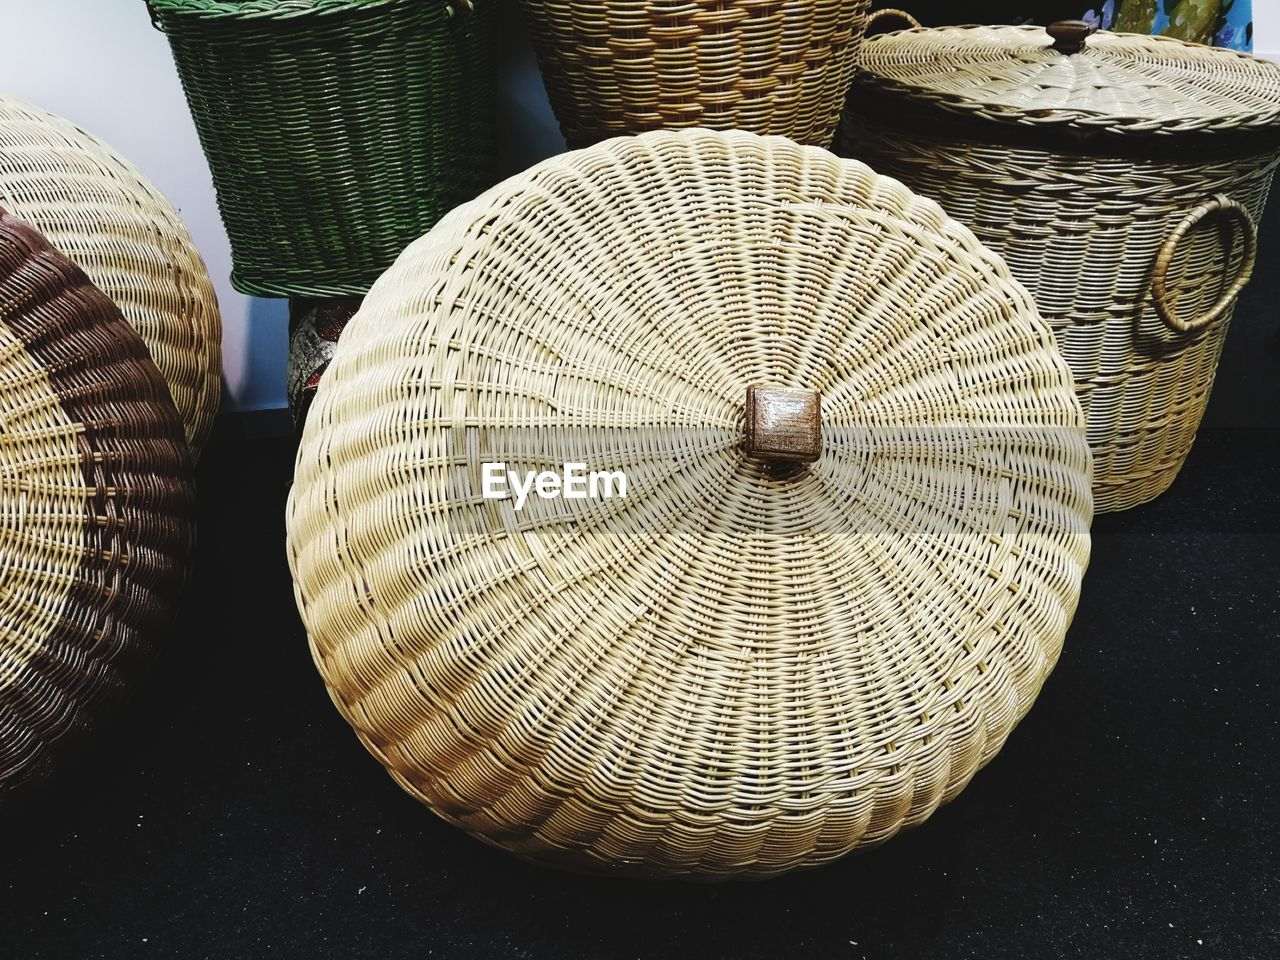 basket, wicker, no people, pattern, close-up, art and craft, still life, container, hat, indoors, choice, craft, table, for sale, market, variation, group of objects, large group of objects, high angle view